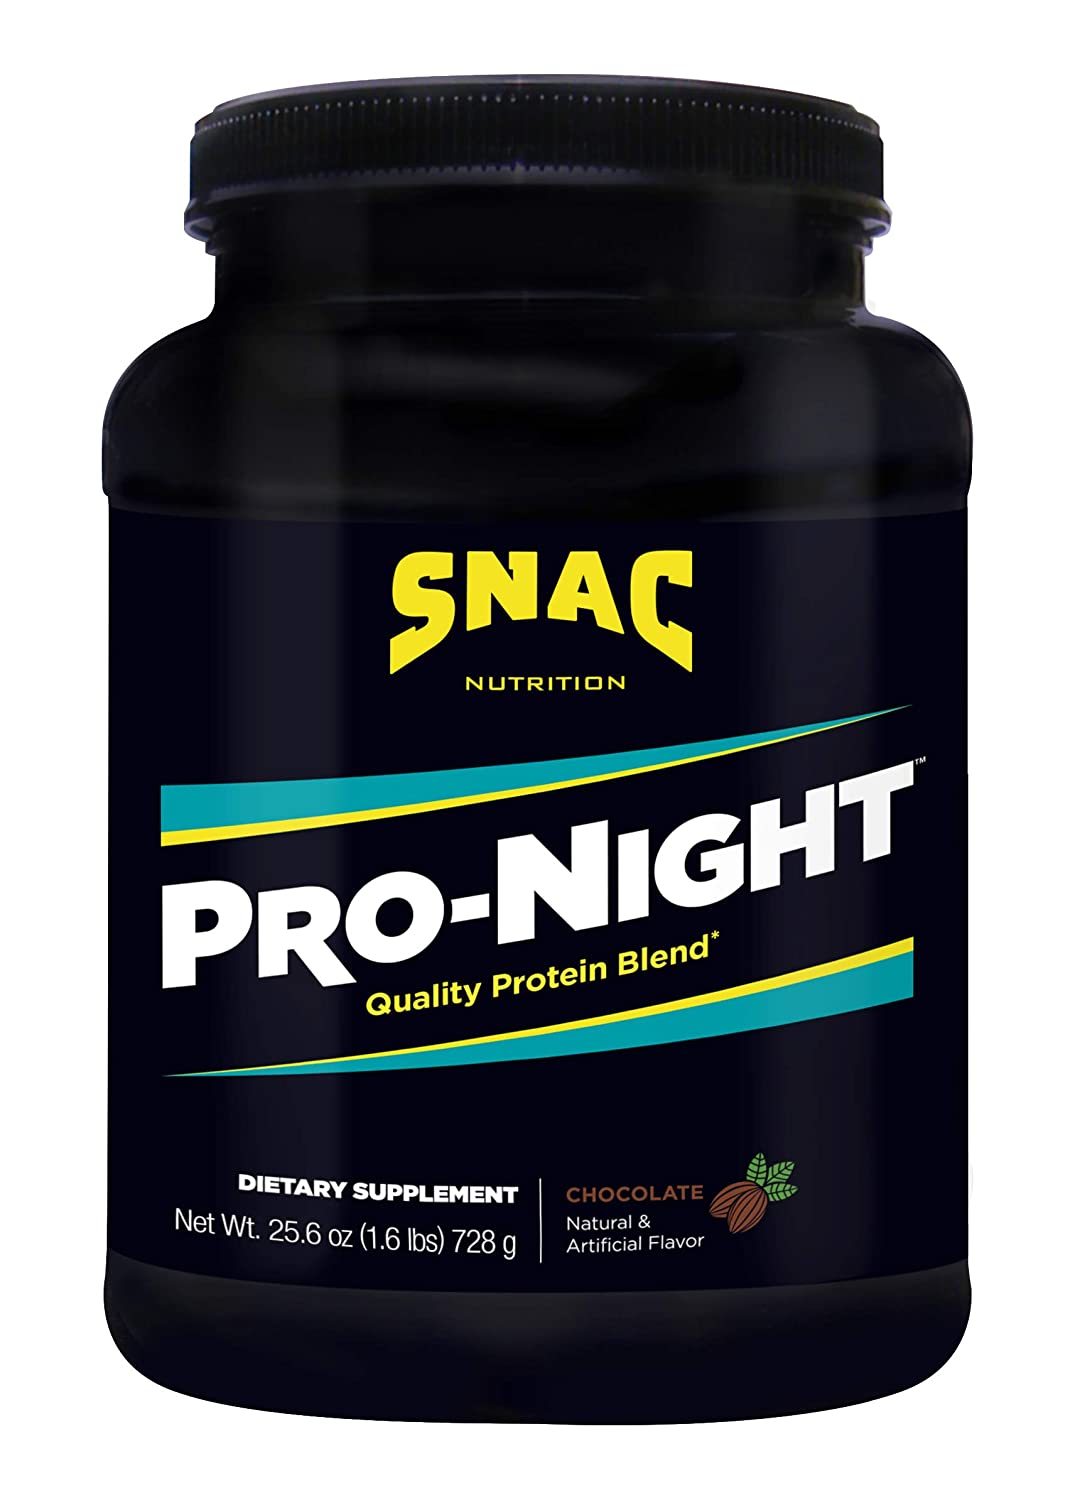 SNAC Pro-Night Quality Protein Blend, Chocolate, 1.6 Pounds